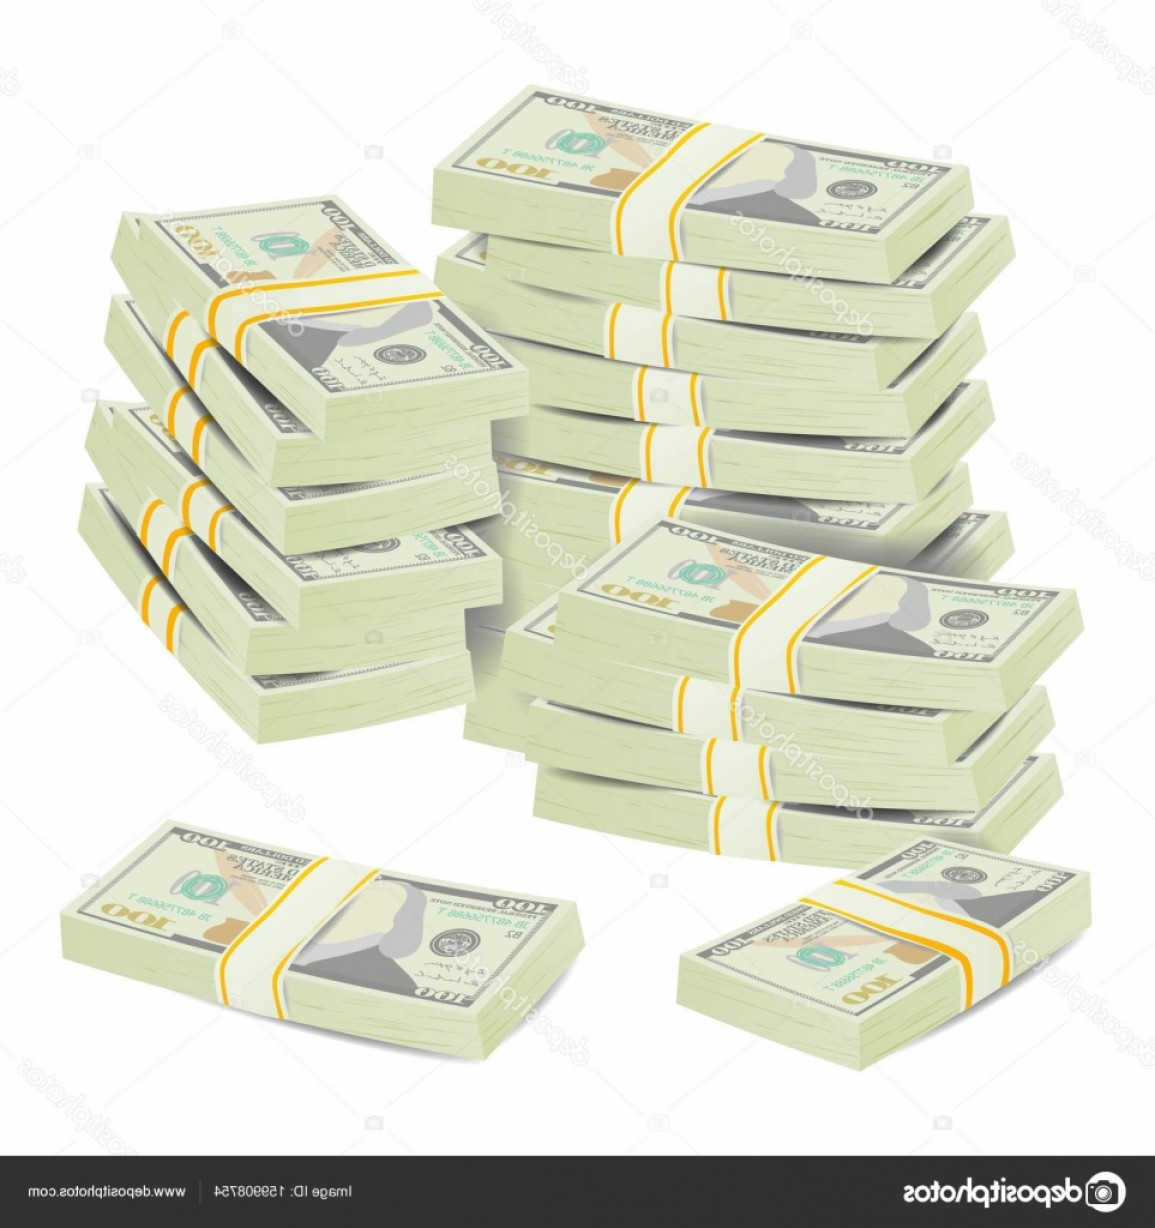 Hundreds Of Money Stacks Vector: Stock Illustration Money Stacks Vector Realistic Concept